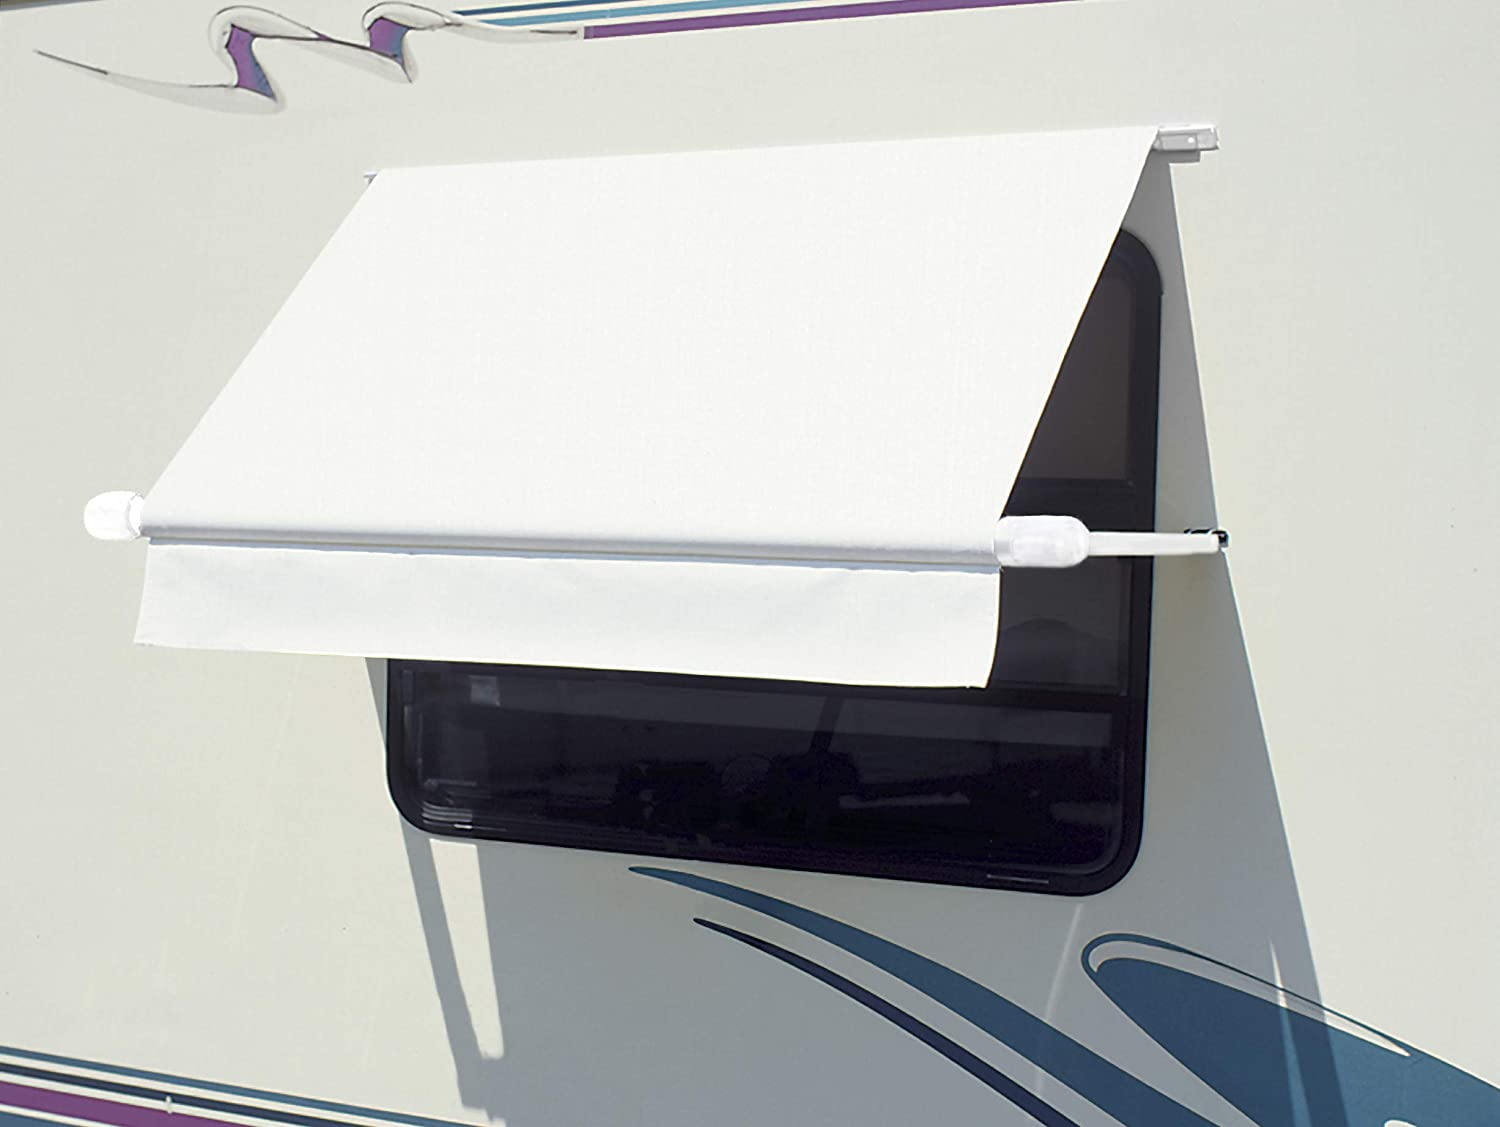 "CAREFREE WH0604F4FW White 6' (72"") Simply Shade RV Window Awning 71rQj2W75XLSL1500_"